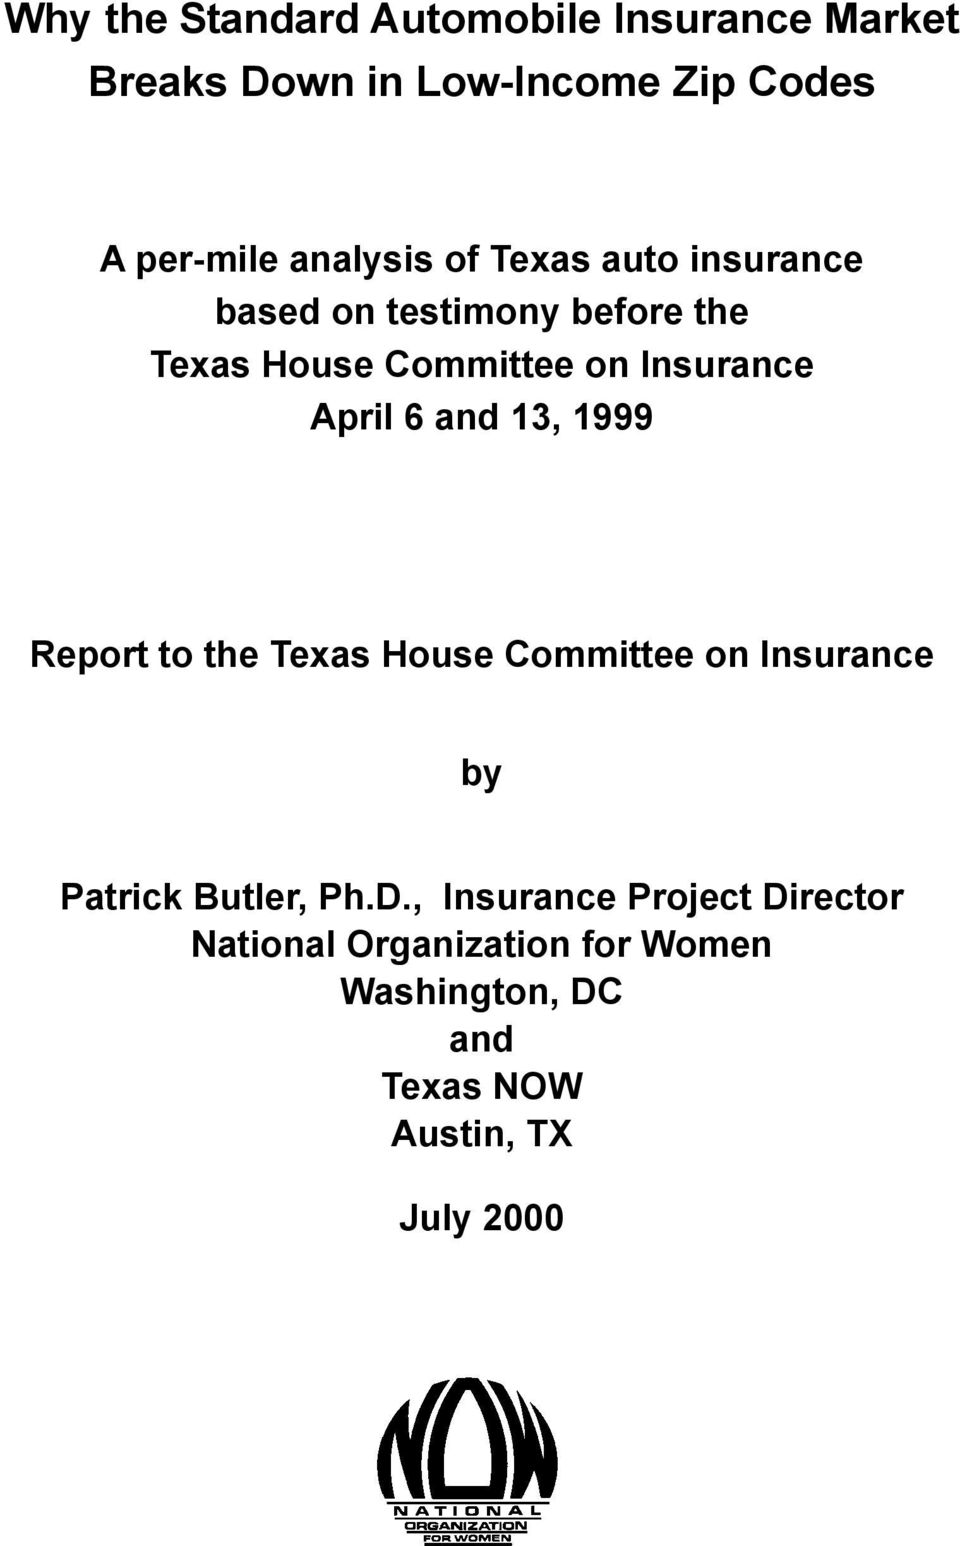 April 6 and 13, 1999 Report to the Texas House Committee on Insurance by Patrick Butler, Ph.D.